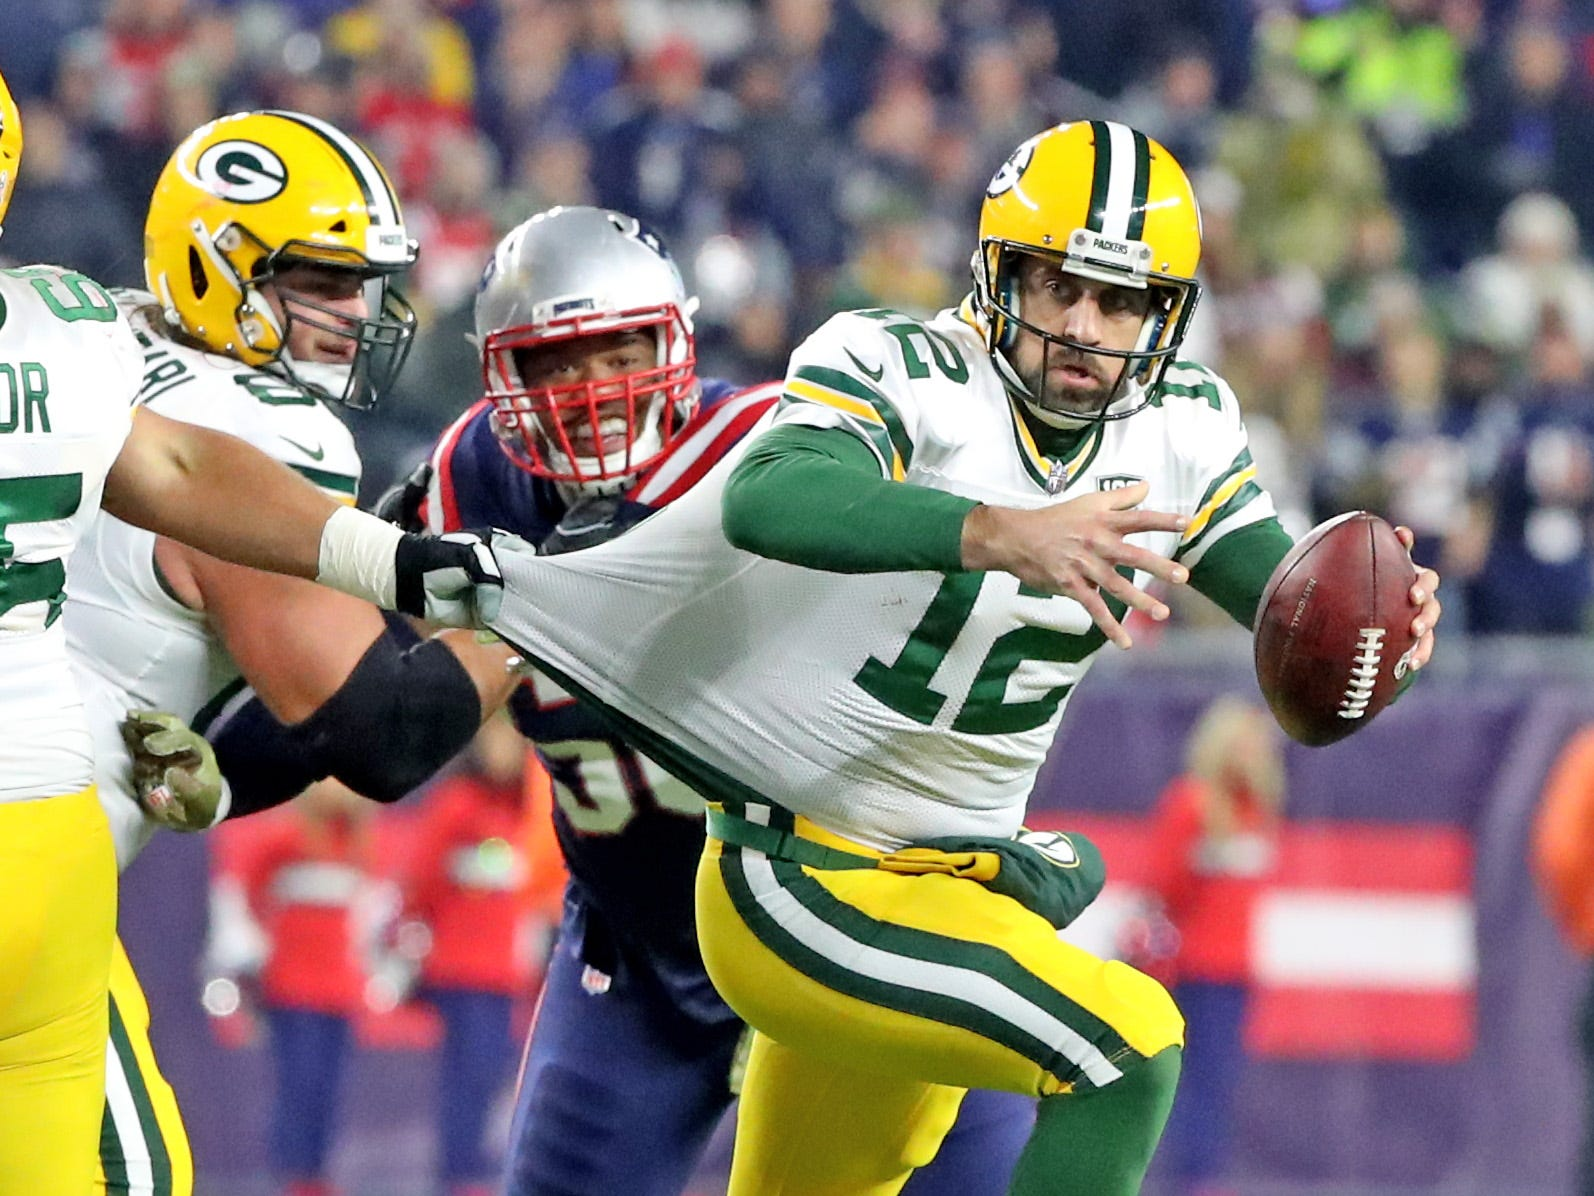 Green Bay Packers quarterback Aaron Rodgers (12) is grabbed by his jersey on a scramble against the New England Patriots Sunday, November 4, 2018 at Gillette Stadium in Foxborough, Mass.